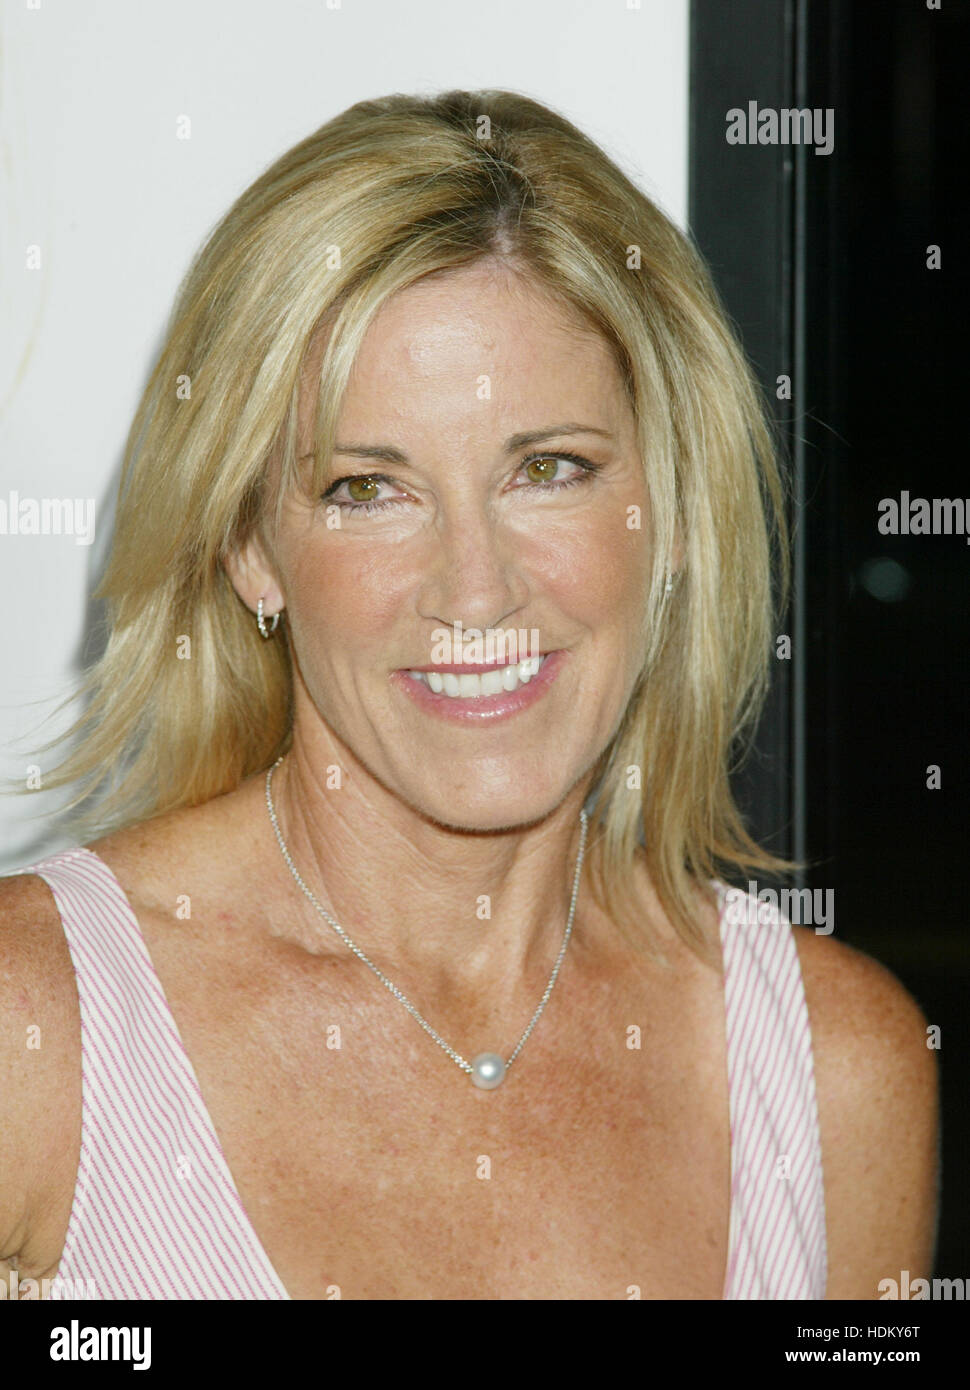 Former Wimbledon champion Chris Evert at the premiere of